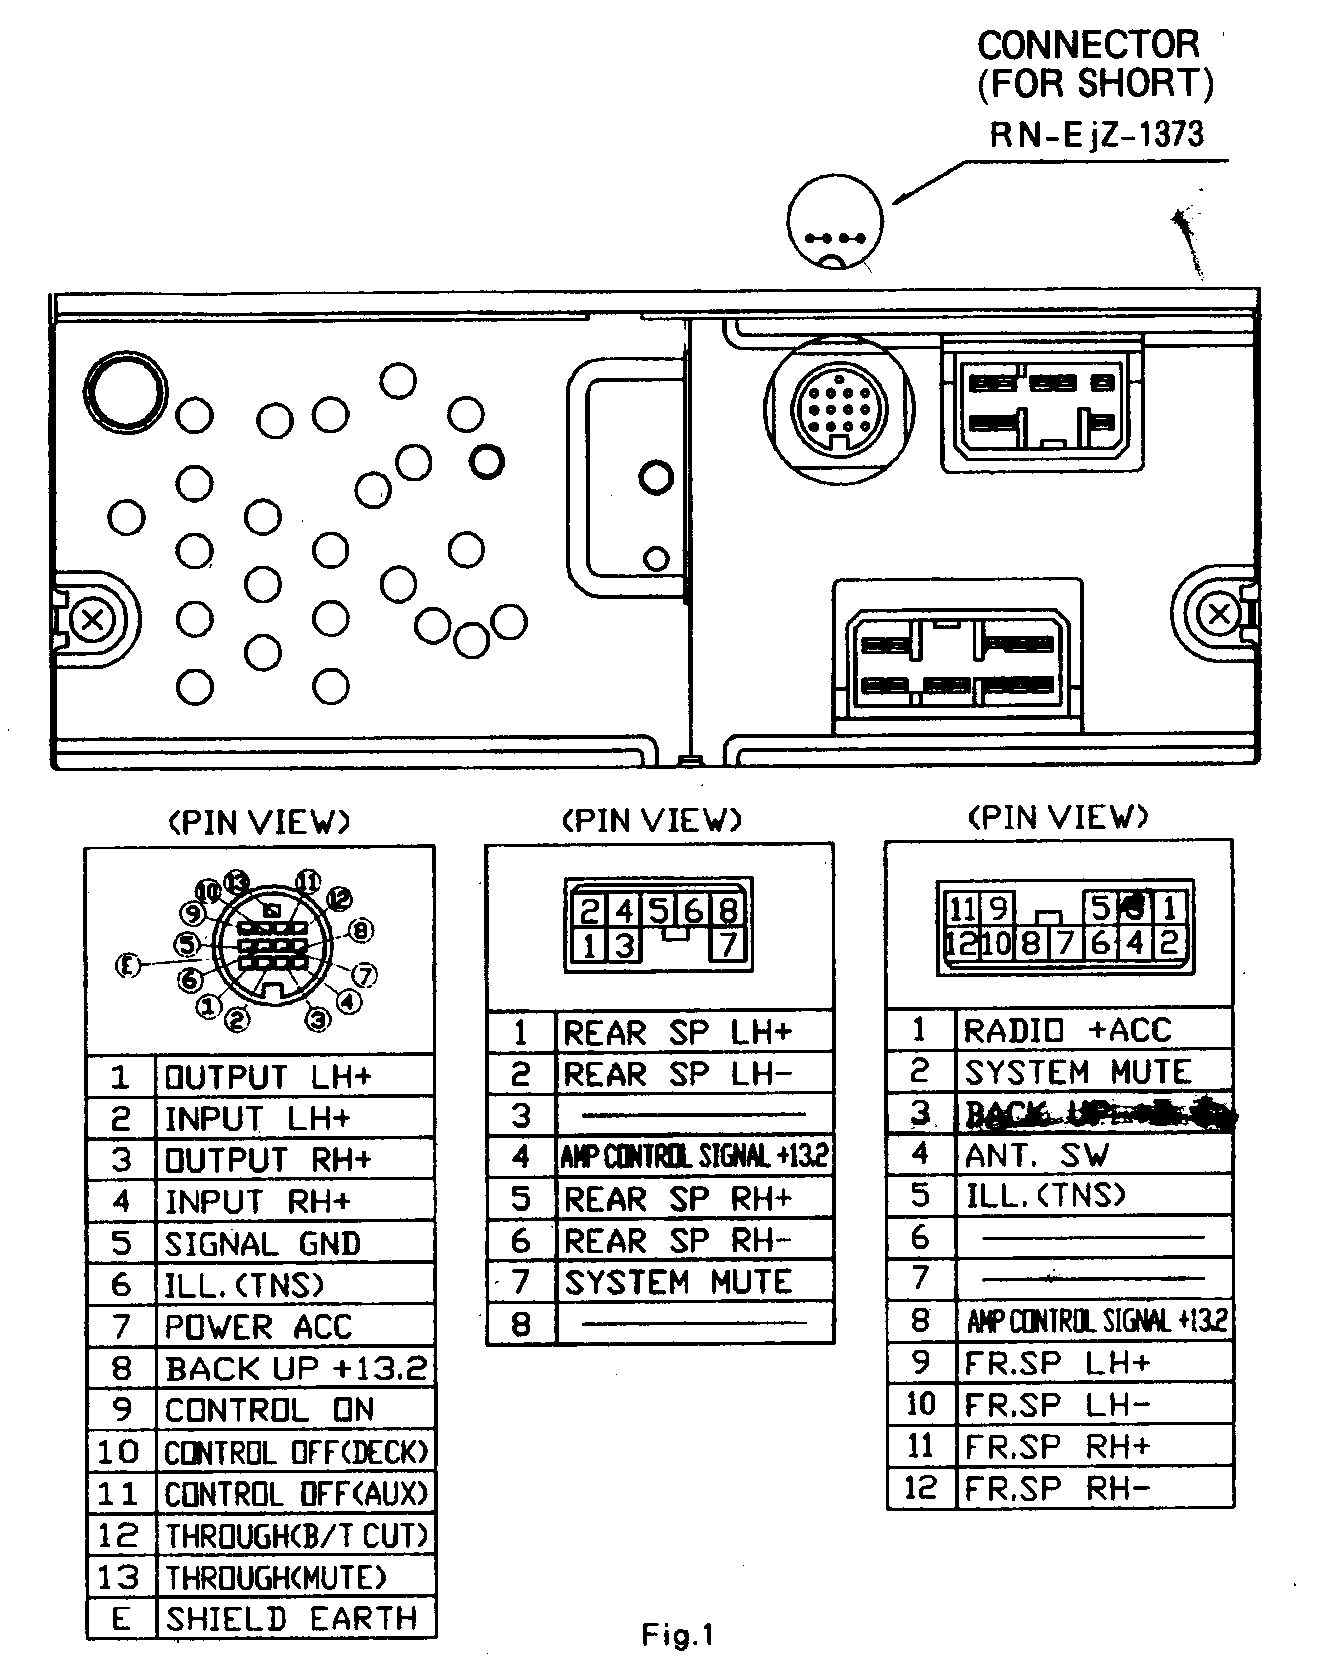 Trailer Breakaway Switch Wiring Diagram besides Kenwood Cd Player Wire Diagram in addition 3377 besides Index additionally Color Tv Receiver Block Diagram. on panasonic wiring diagram